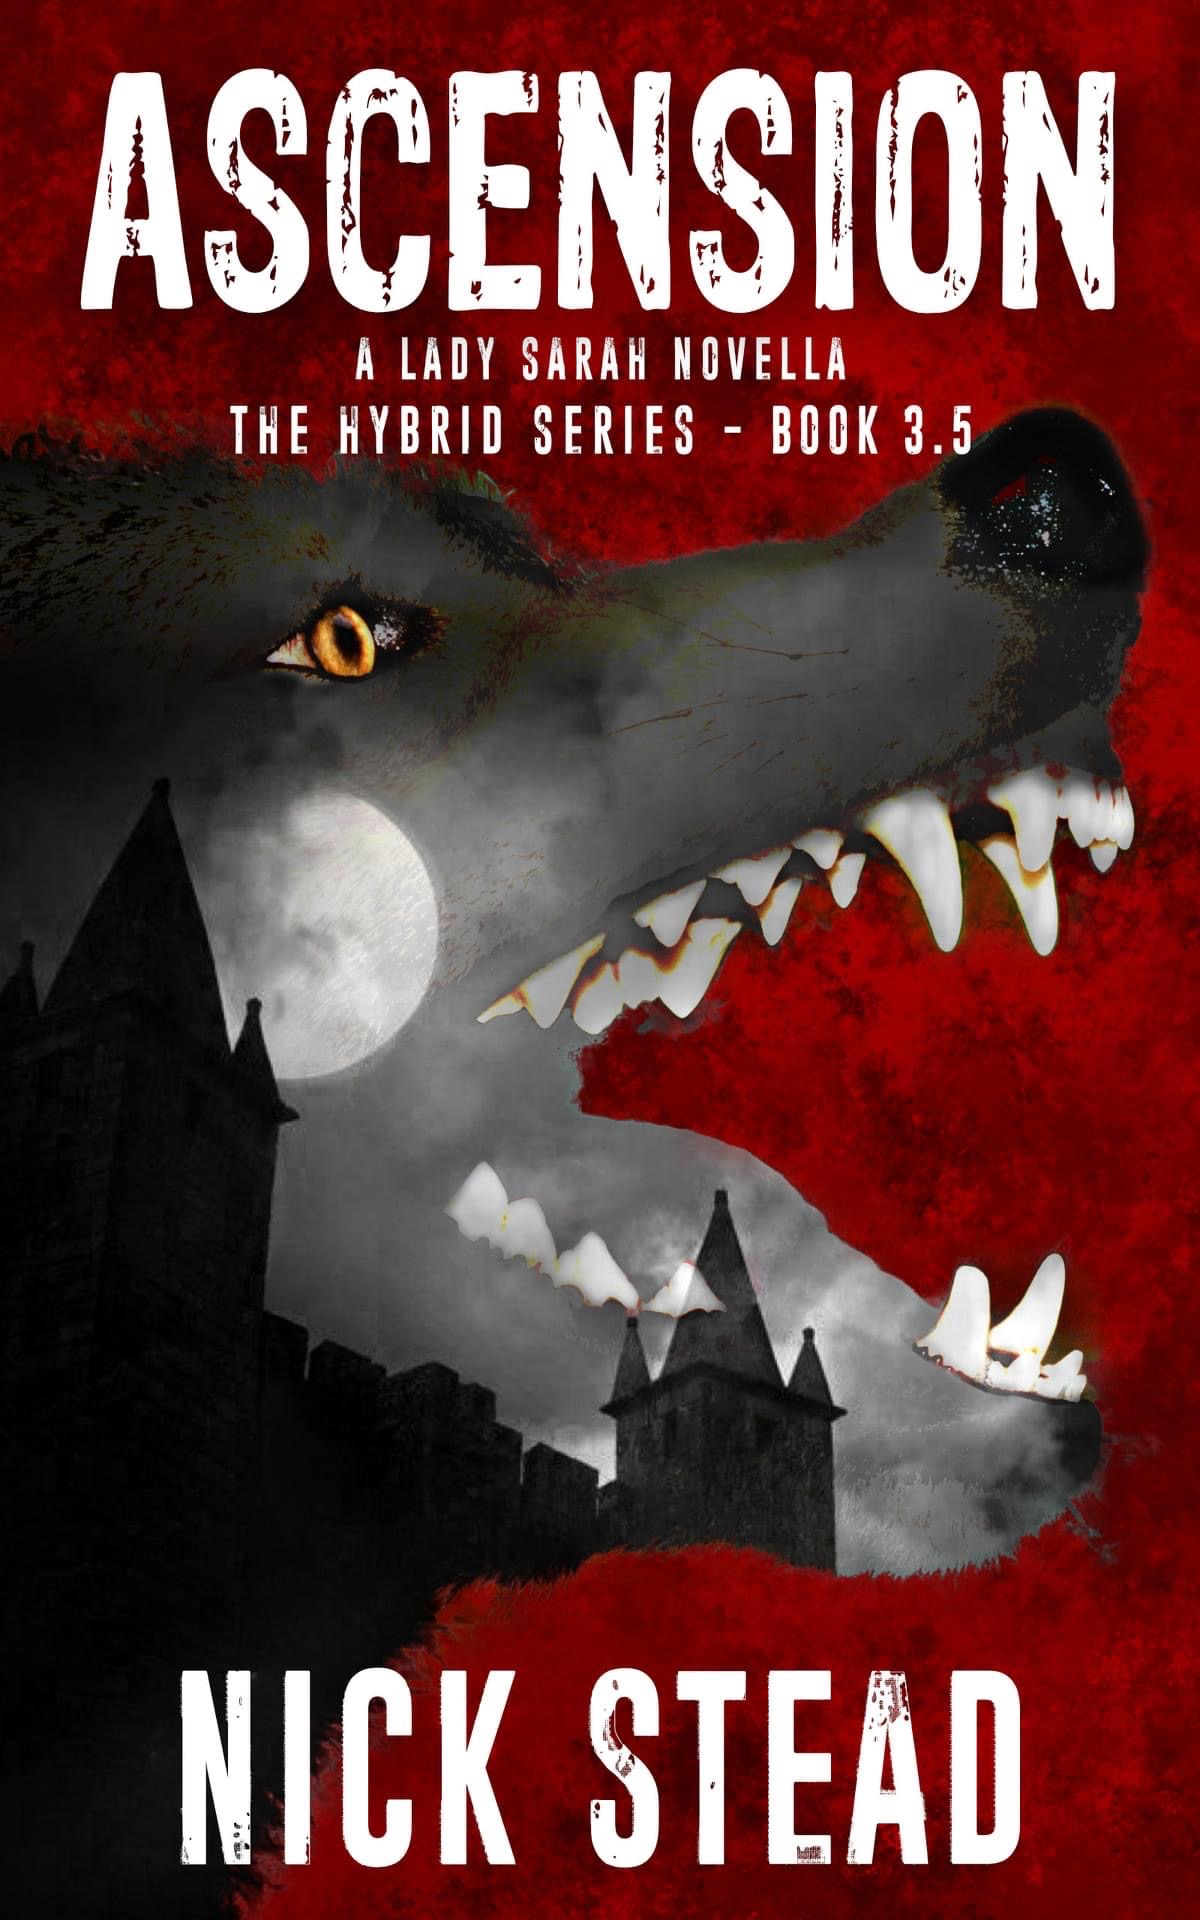 Ascension is the latest book in the Hybrid series from Nick Stead available now